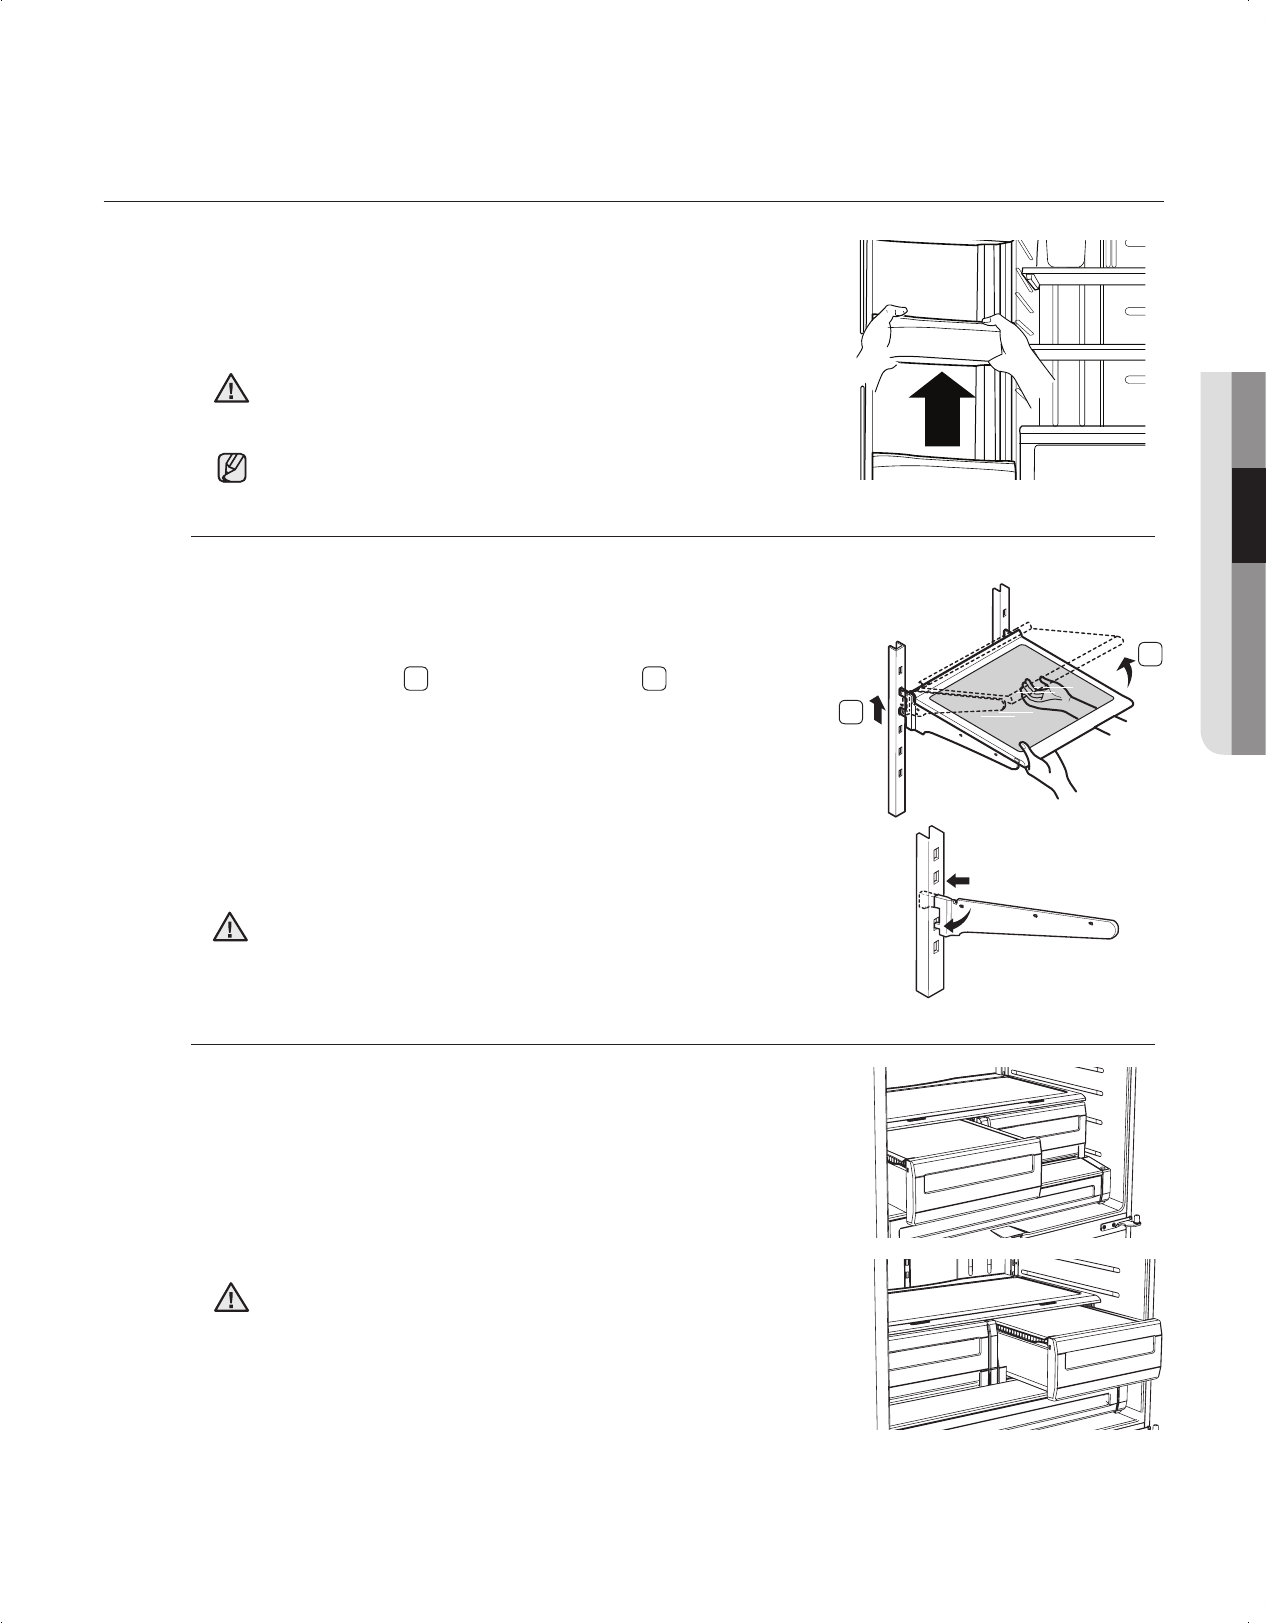 Samsung RFG298AARS User Manual To The 99d3cc6d c612 4d7f